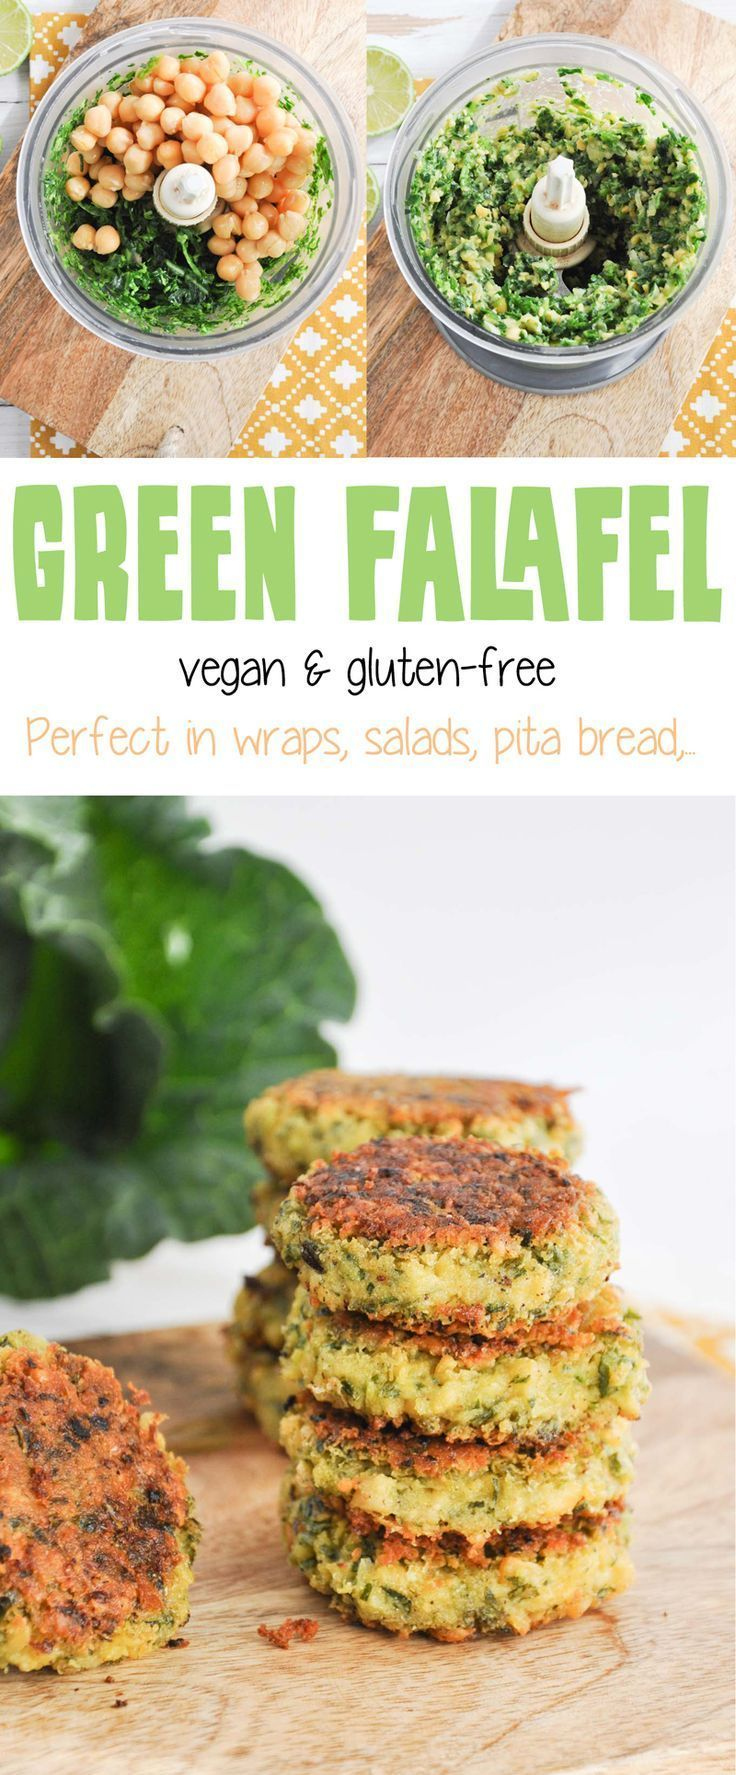 Recipe for vegan & gluten-free Green Falafel. Super easy and quick to make, don't require soaking of the chickpeas.